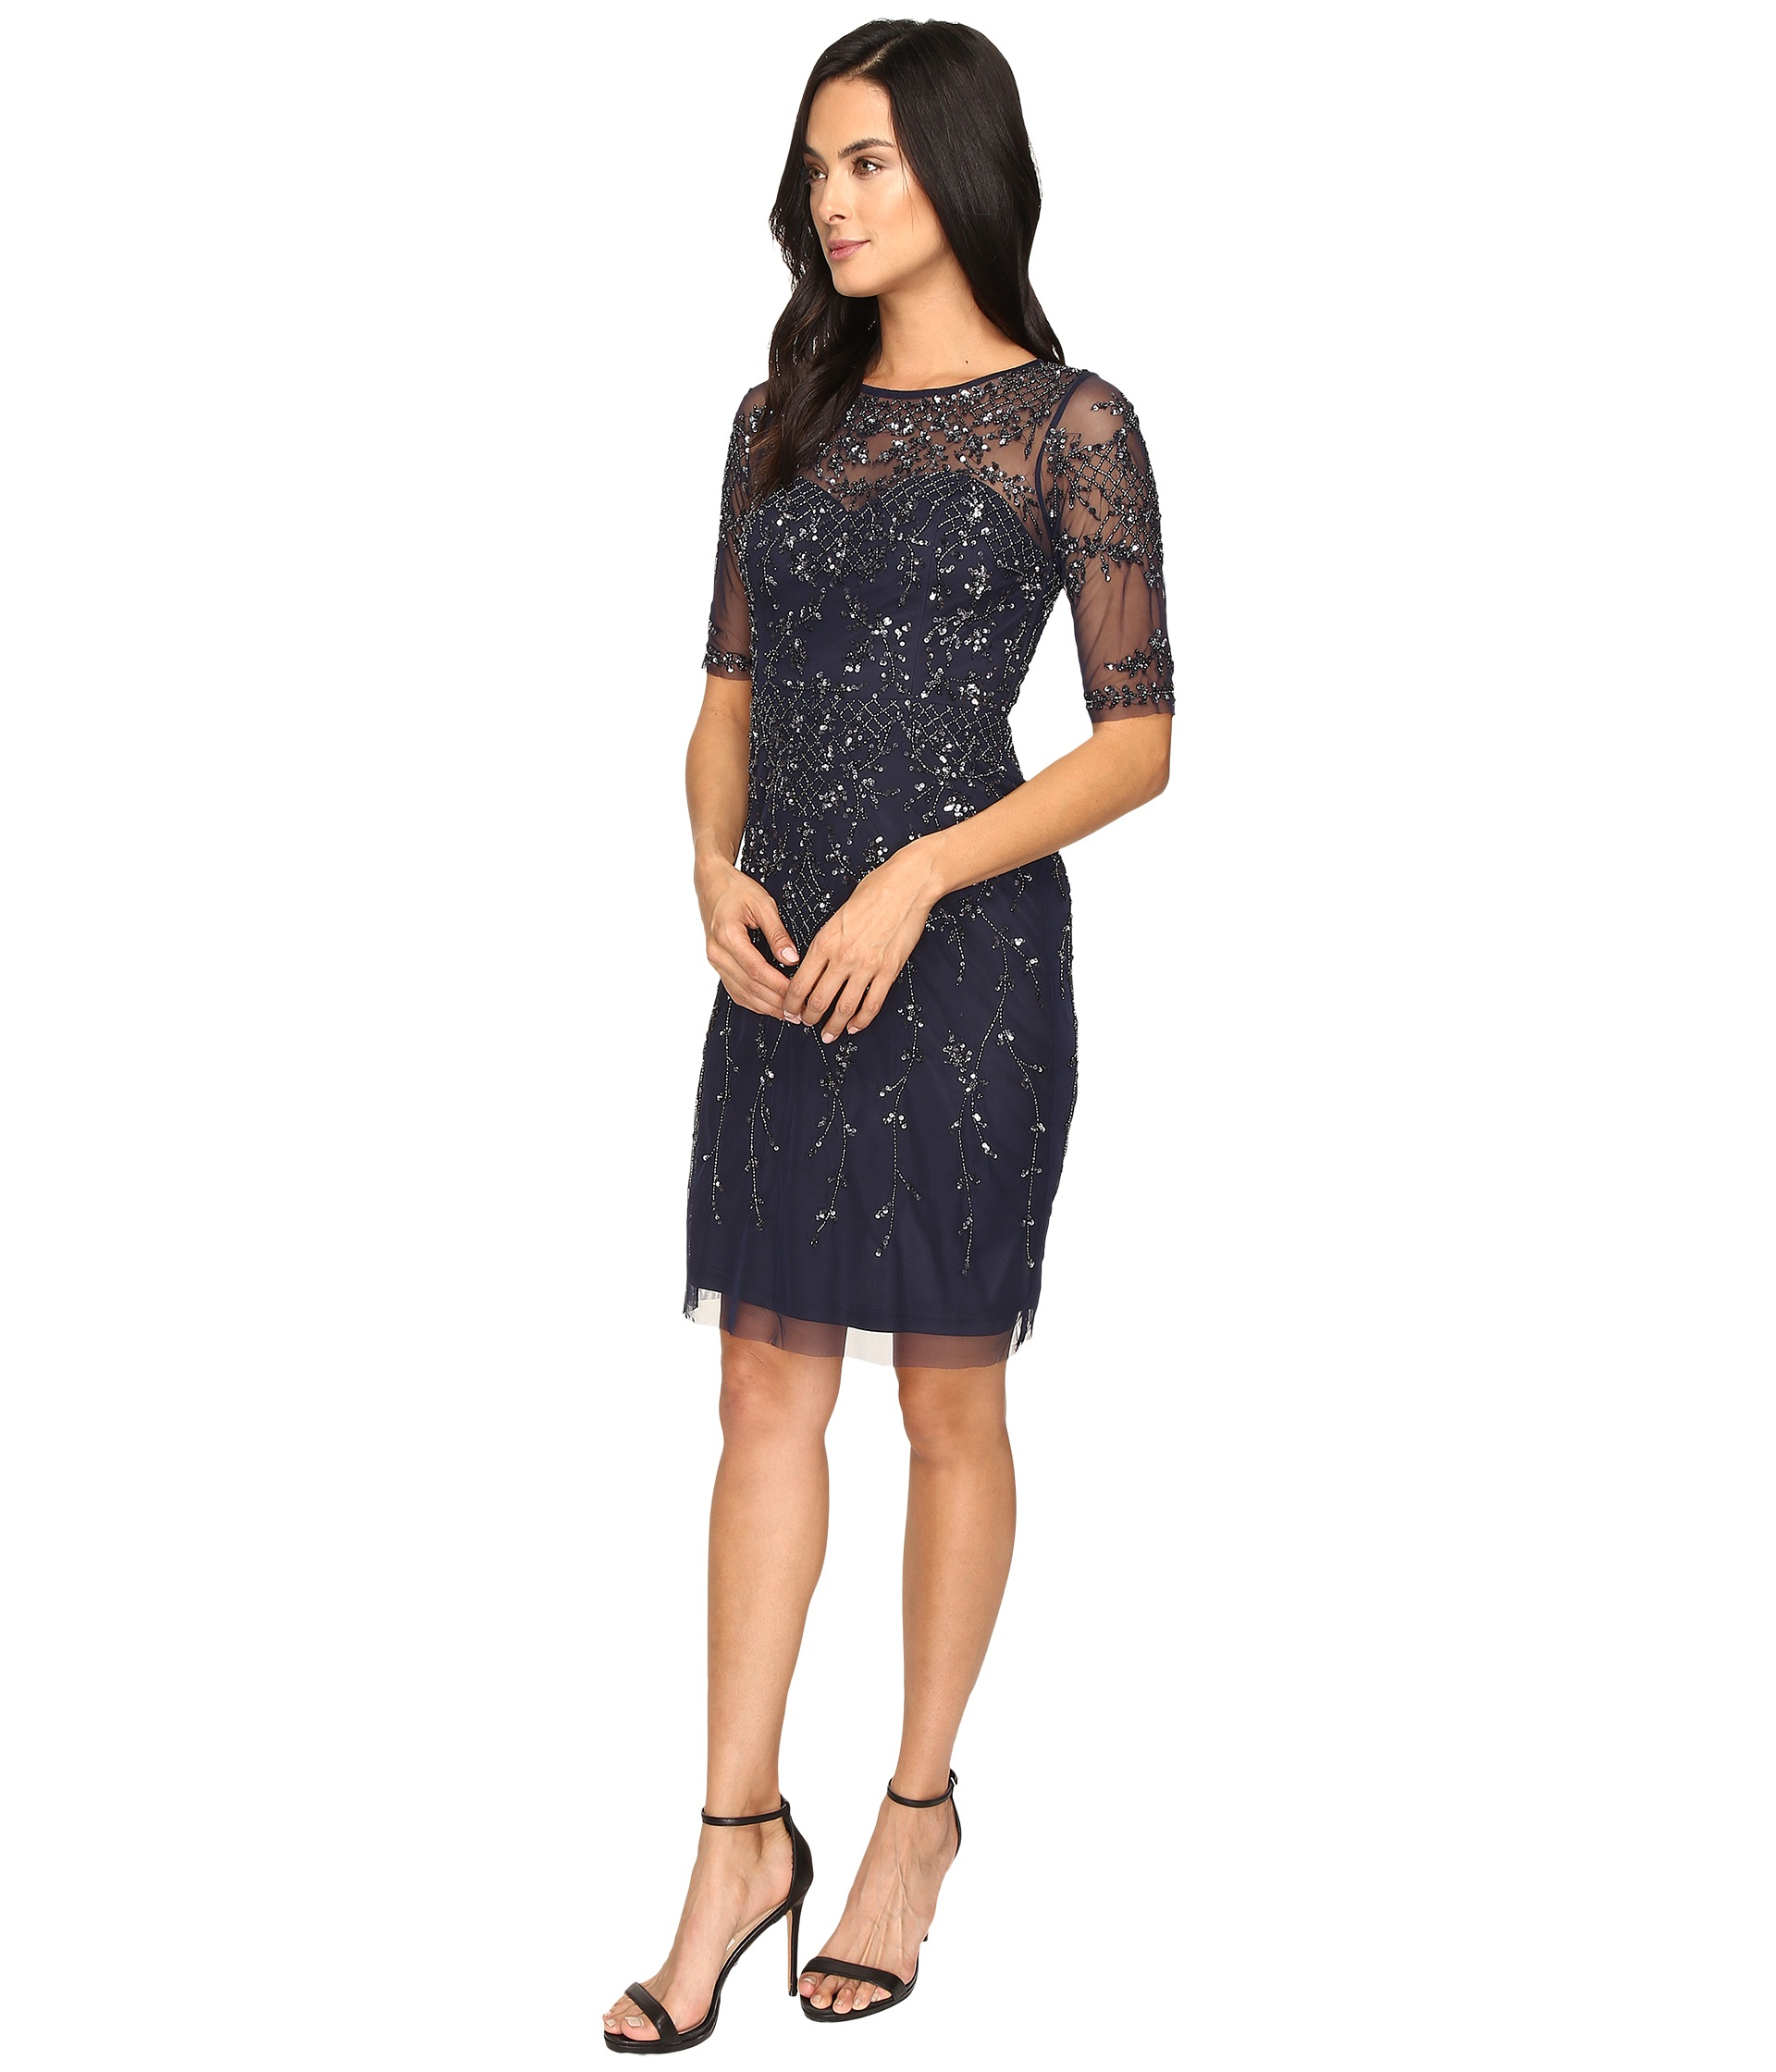 Adrianna Papell 3 4 Sleeve Fully Beaded Cocktail Dress